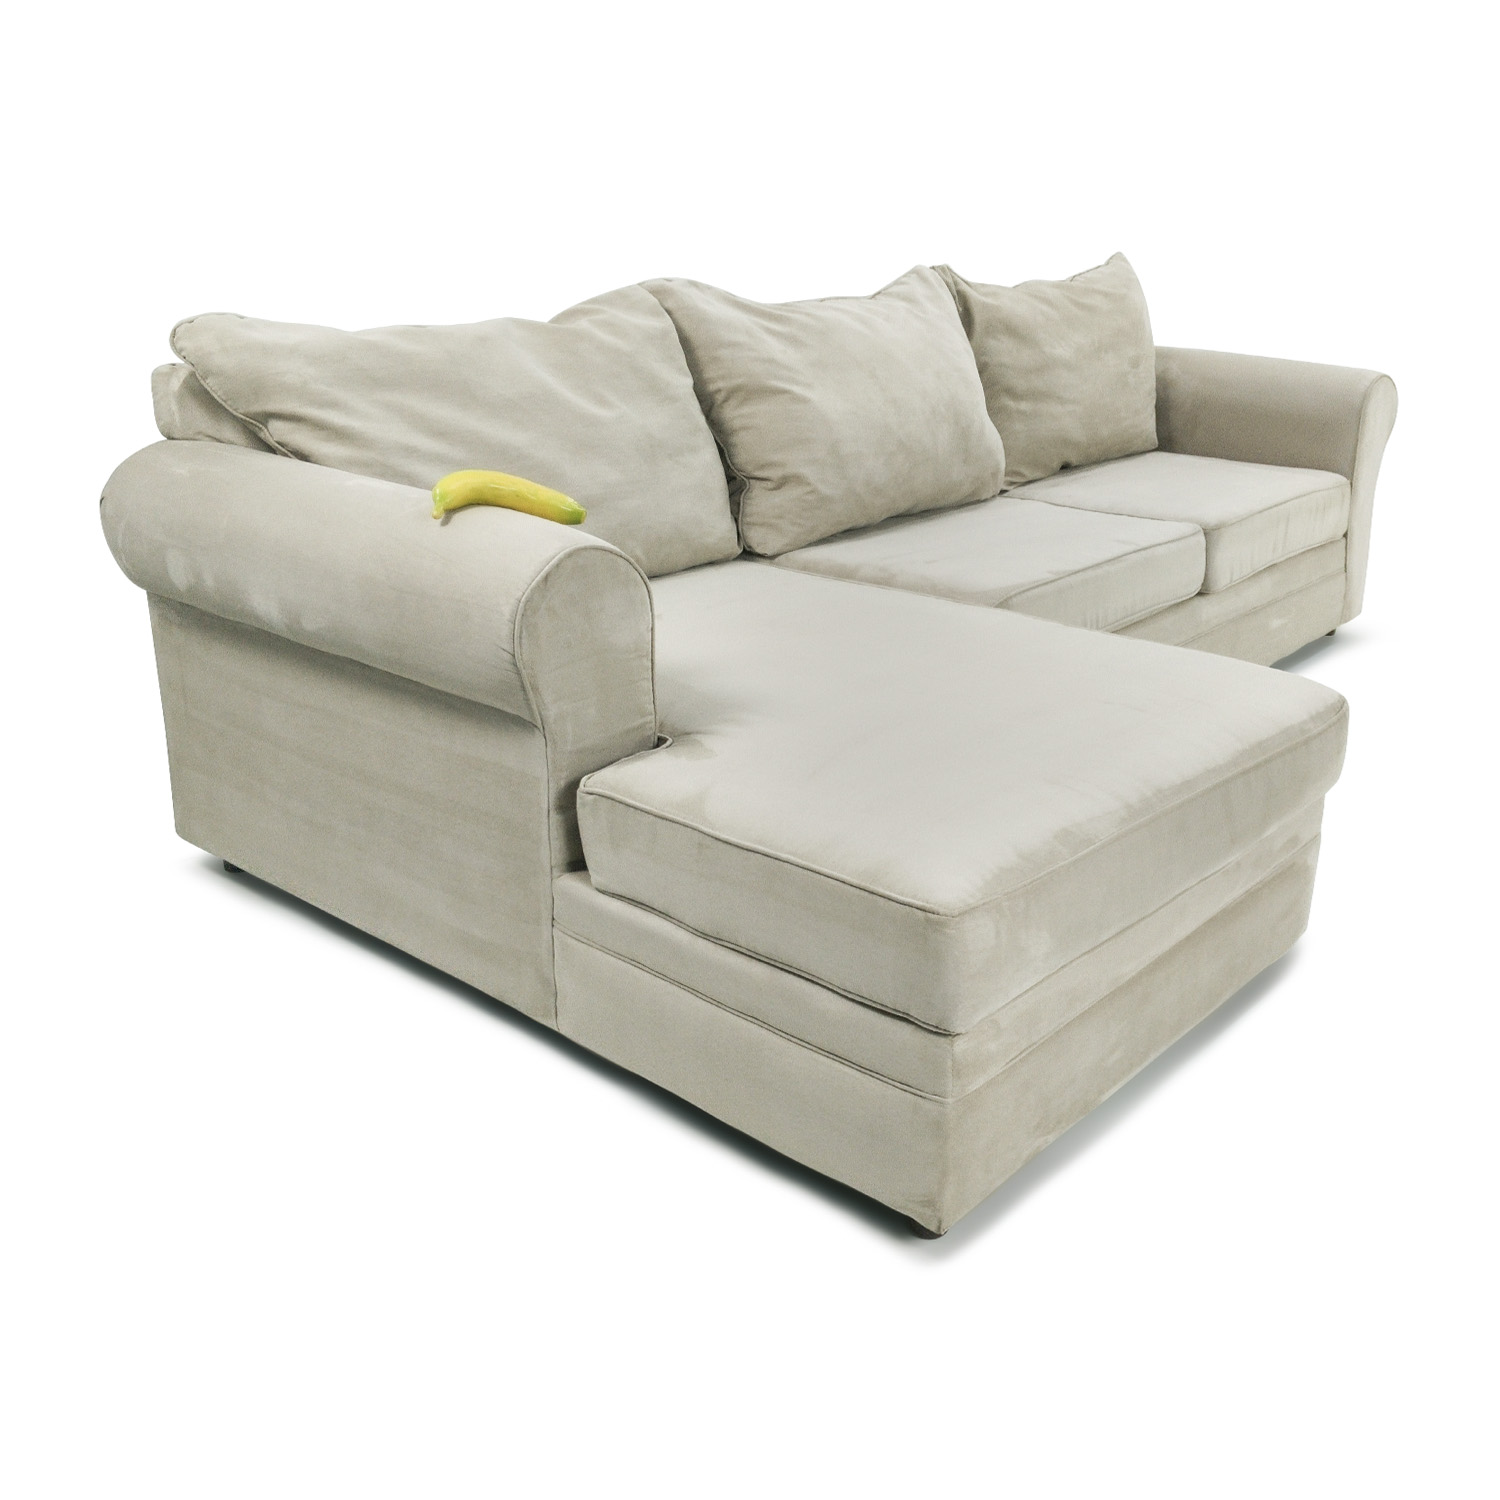 50% OFF Bobs Furniture Venus 2 Piece Sectional Sofas